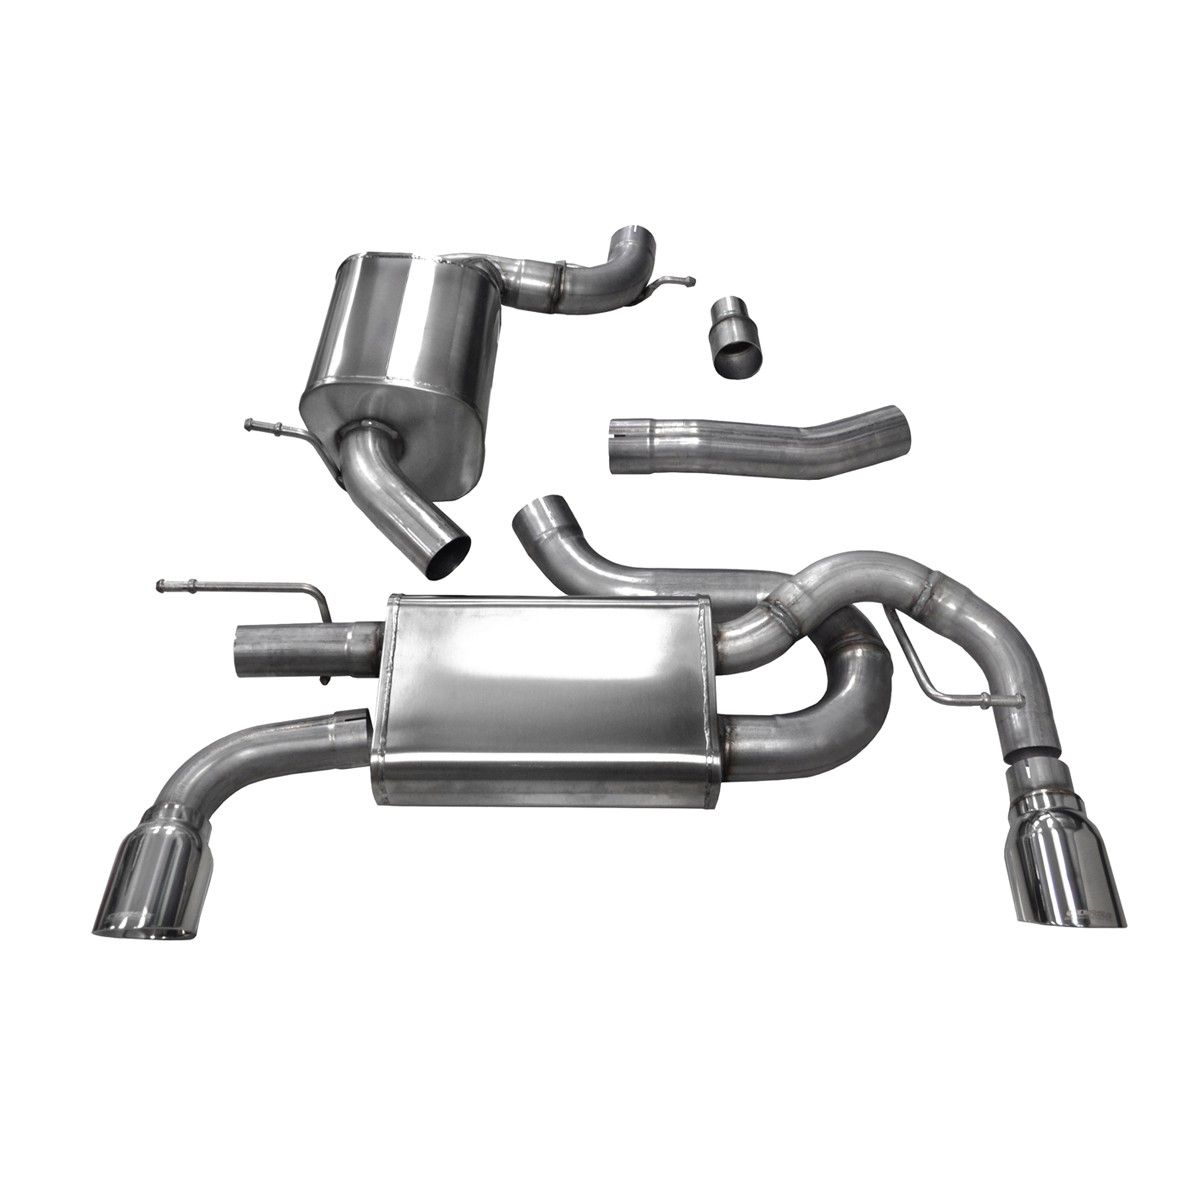 Corsa Performance MkVI Volkswagen Golf/GTI 2.0T Cat-Back Exhaust System - Polished Tips